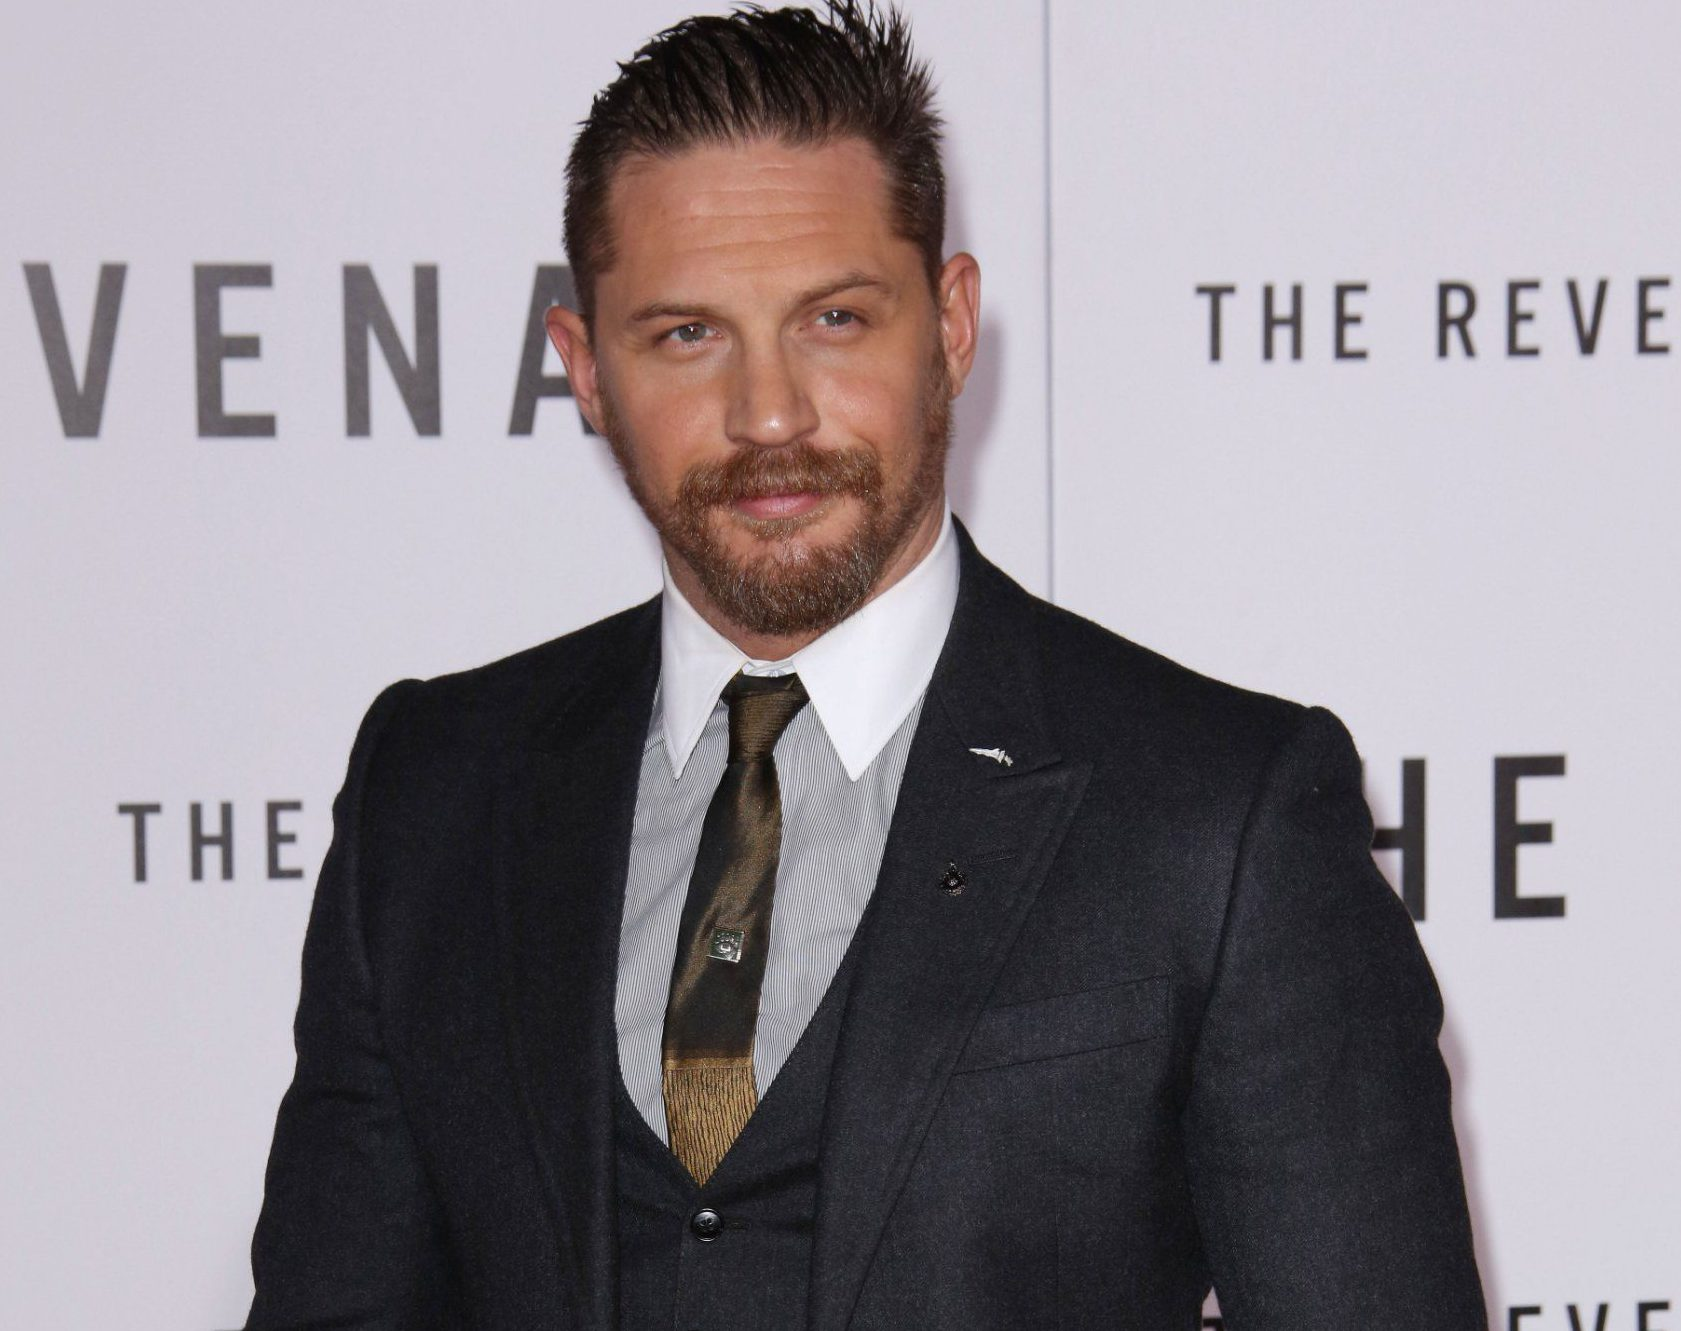 Tom Hardy defends Venom as film fans fume over PG-13 rating